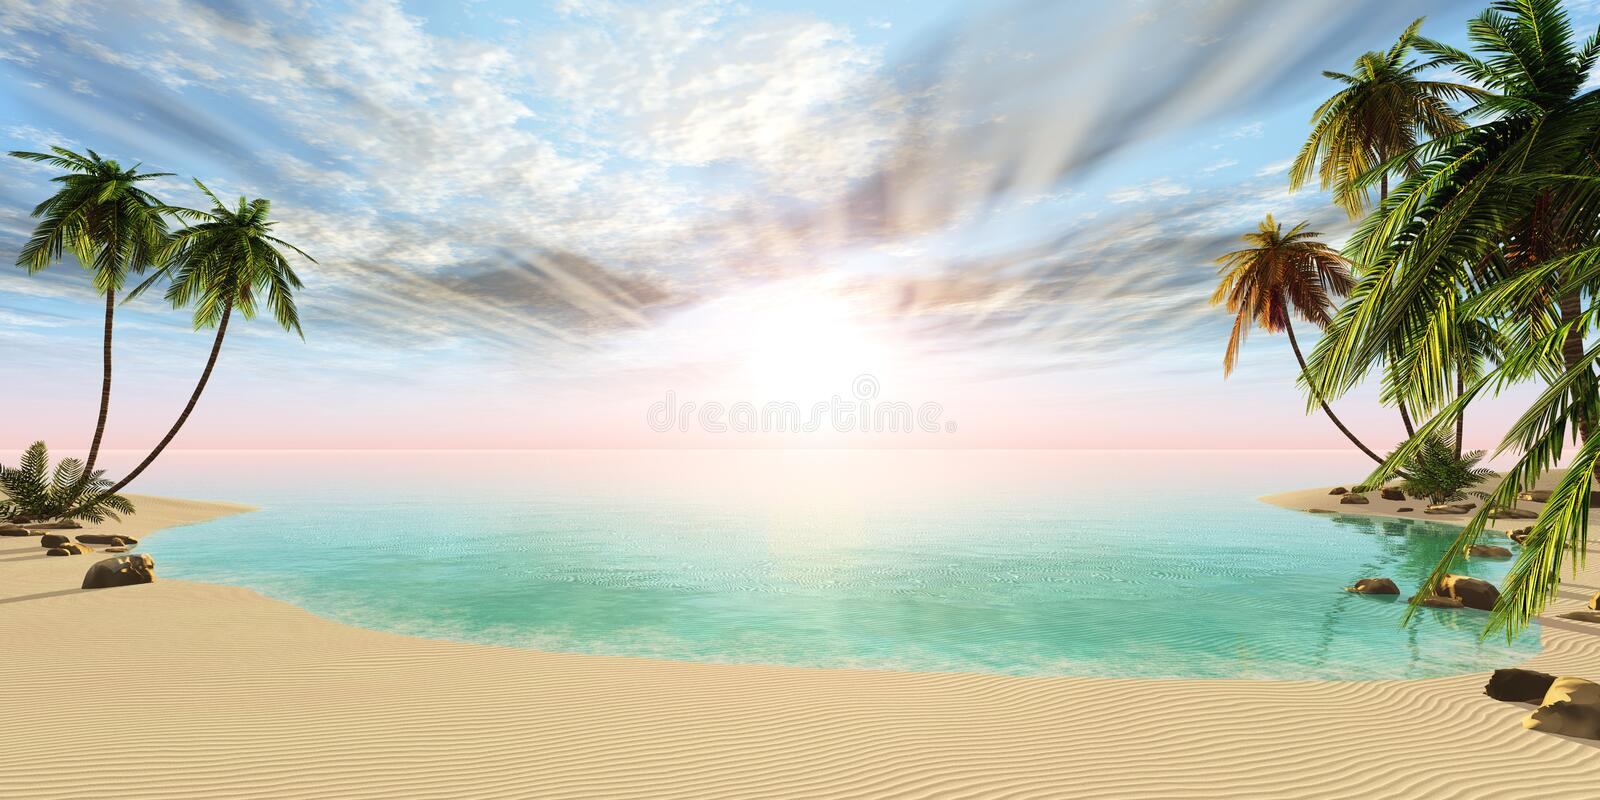 Panoramic landscape of tropical beach with palm trees royalty free illustration